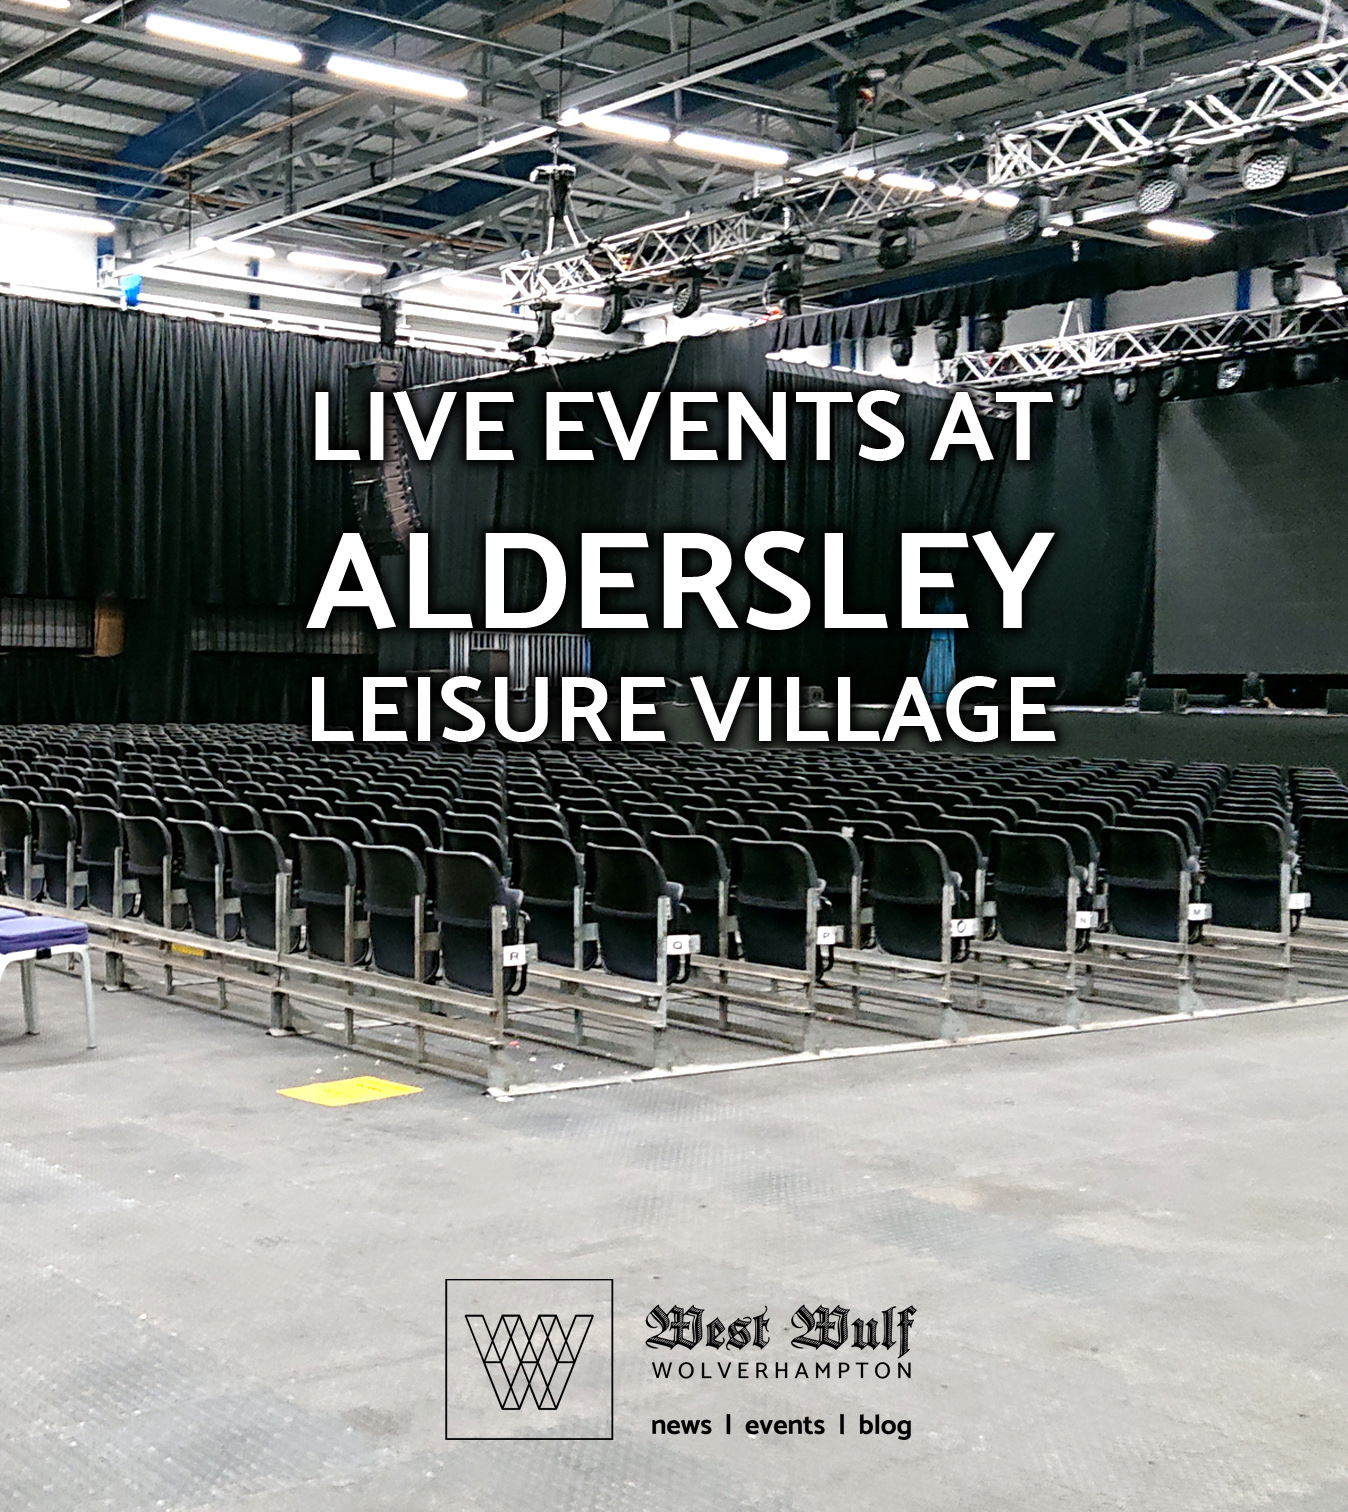 Live events at Aldersley